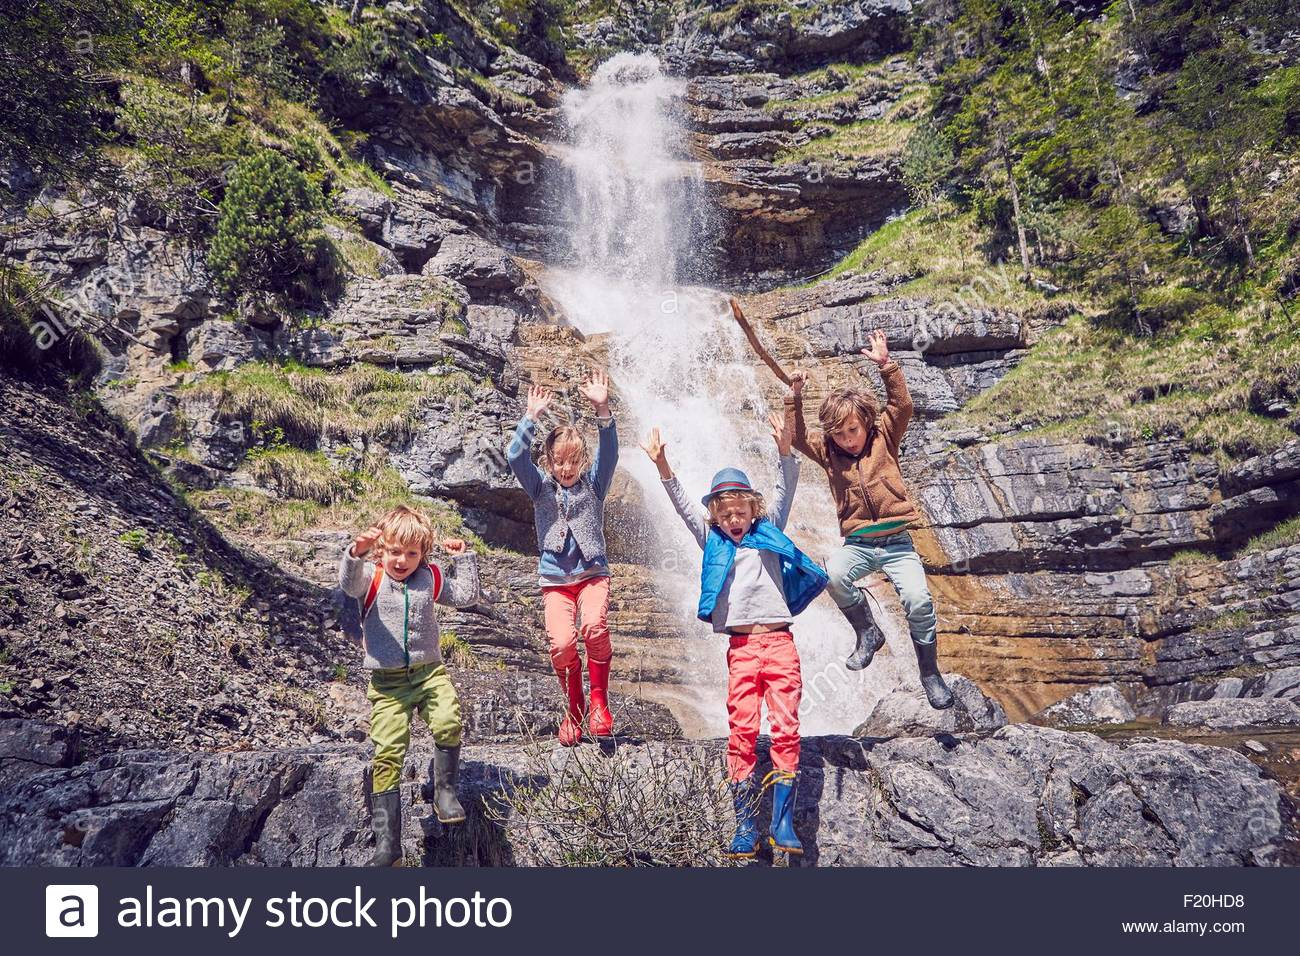 Group of children jumping off rocks by waterfall - Stock Image